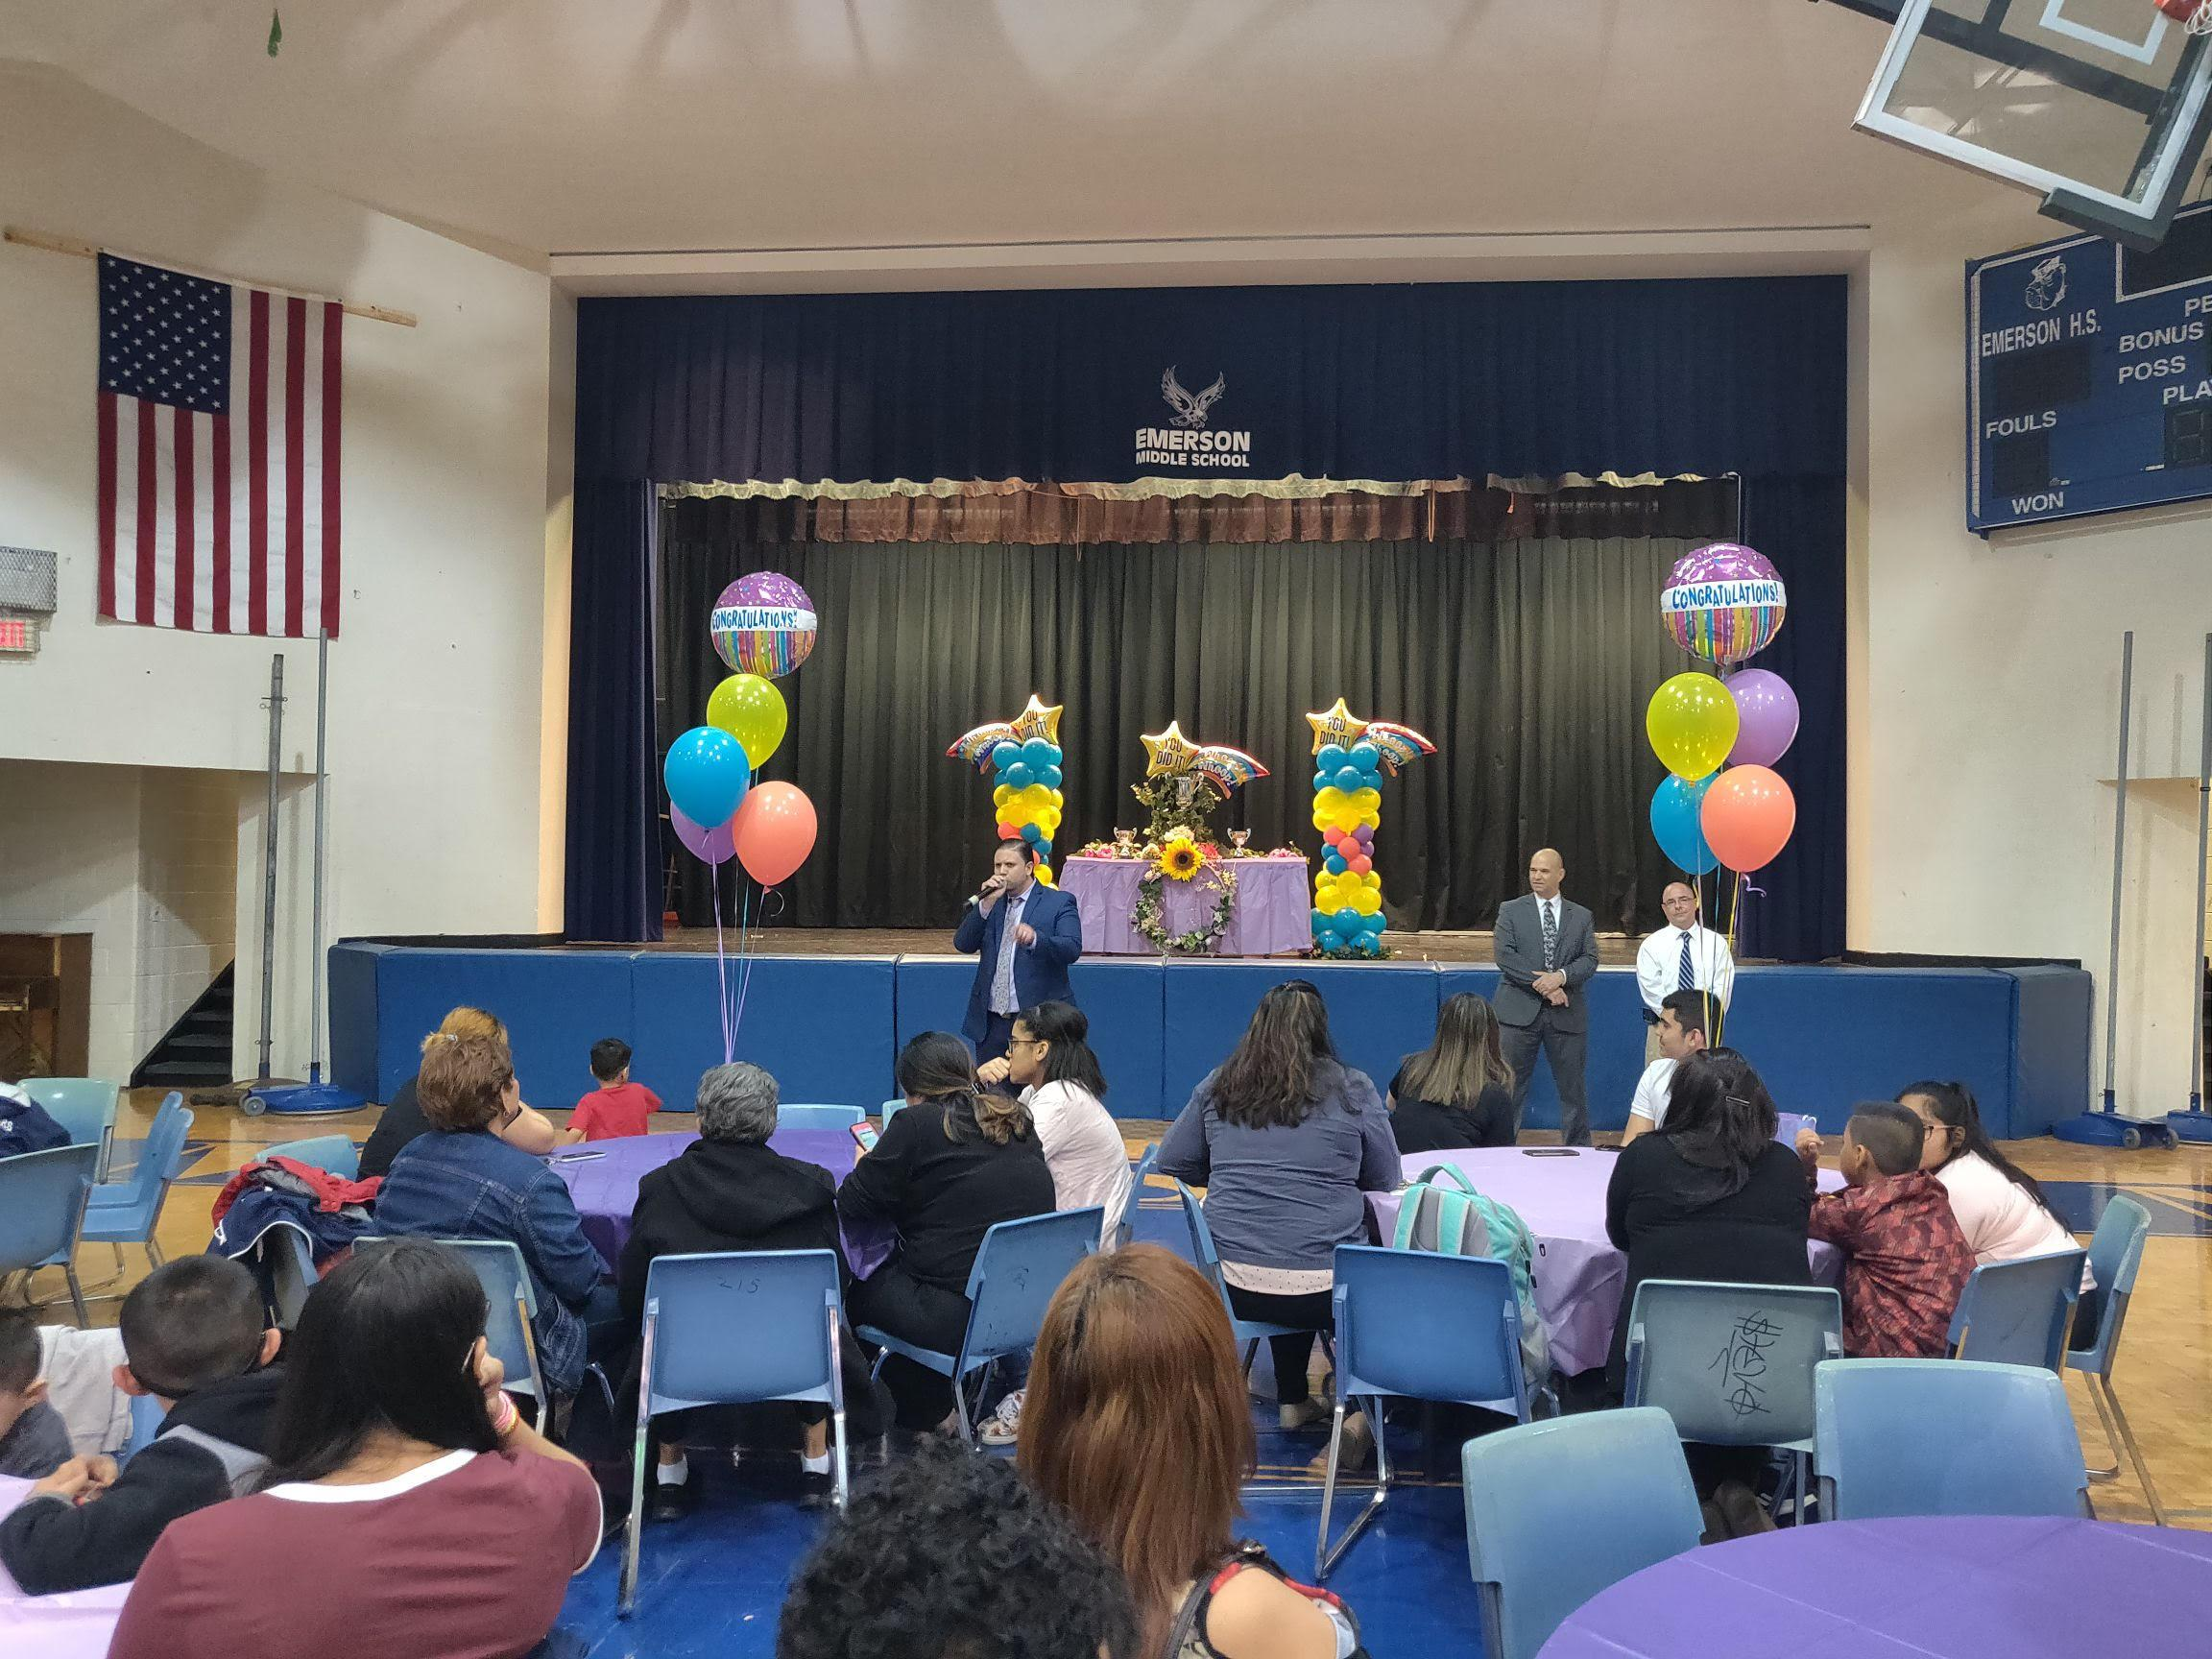 Mr. Abbato addressing the parents with Mr. Aleman and Mr. Higuera at the stage